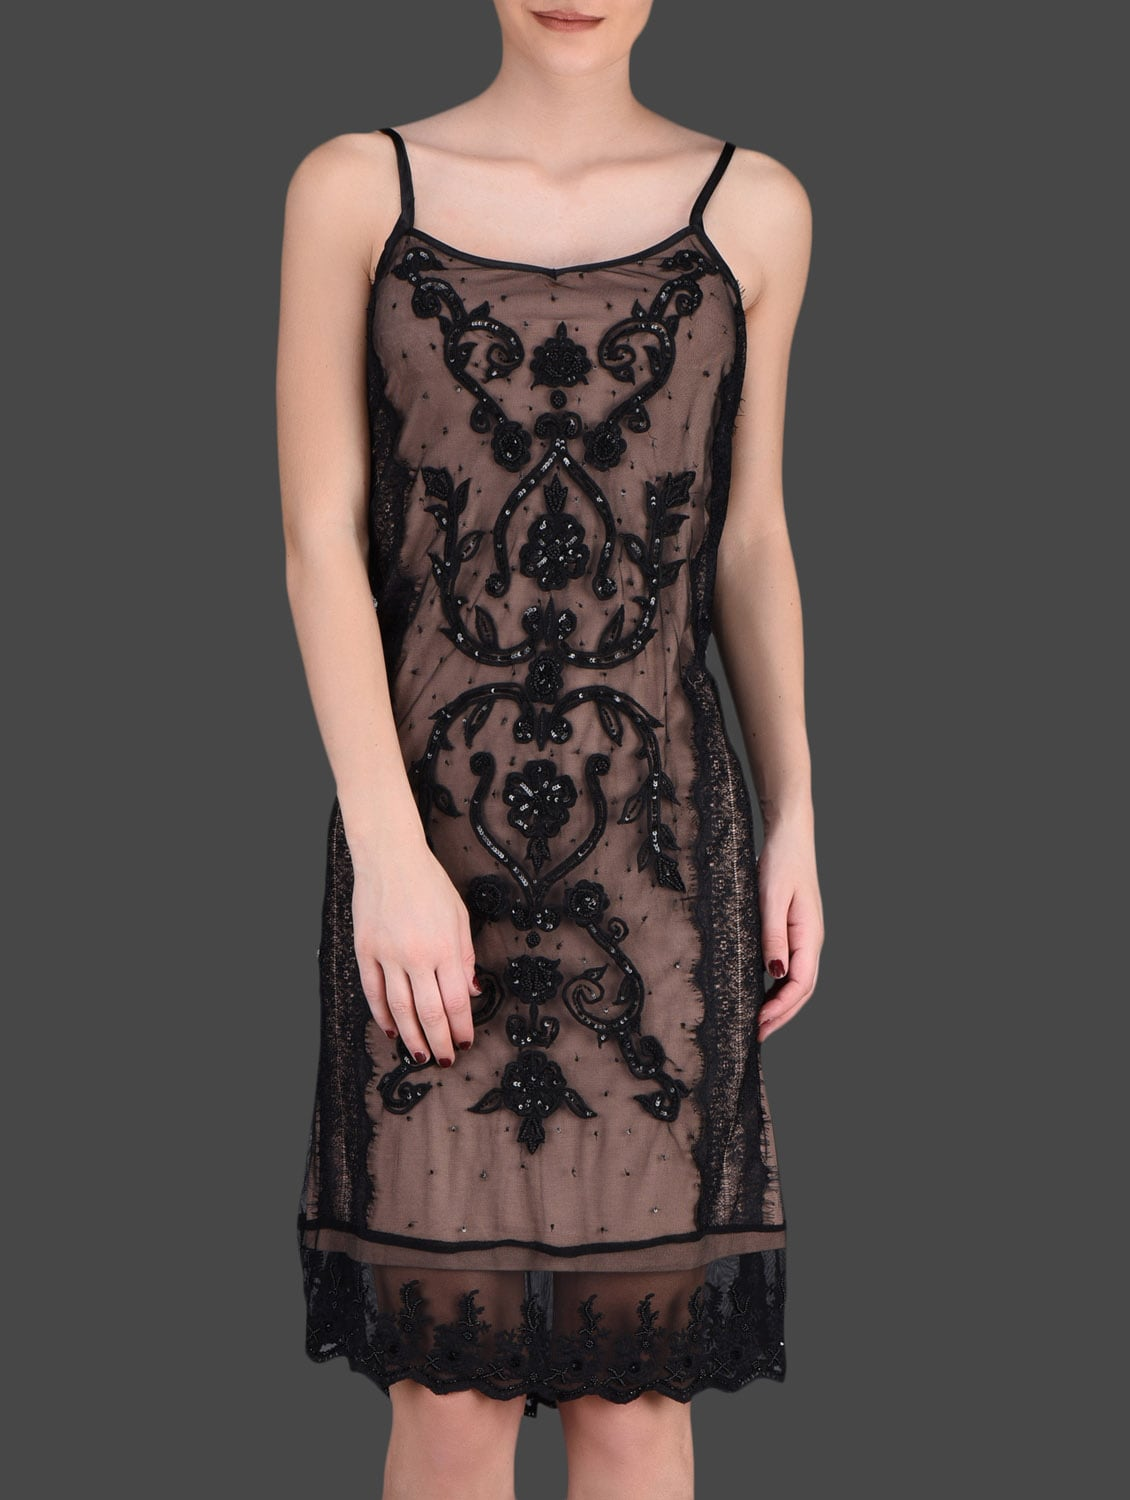 Embellished Black Lace Slip Dress - LABEL Ritu Kumar